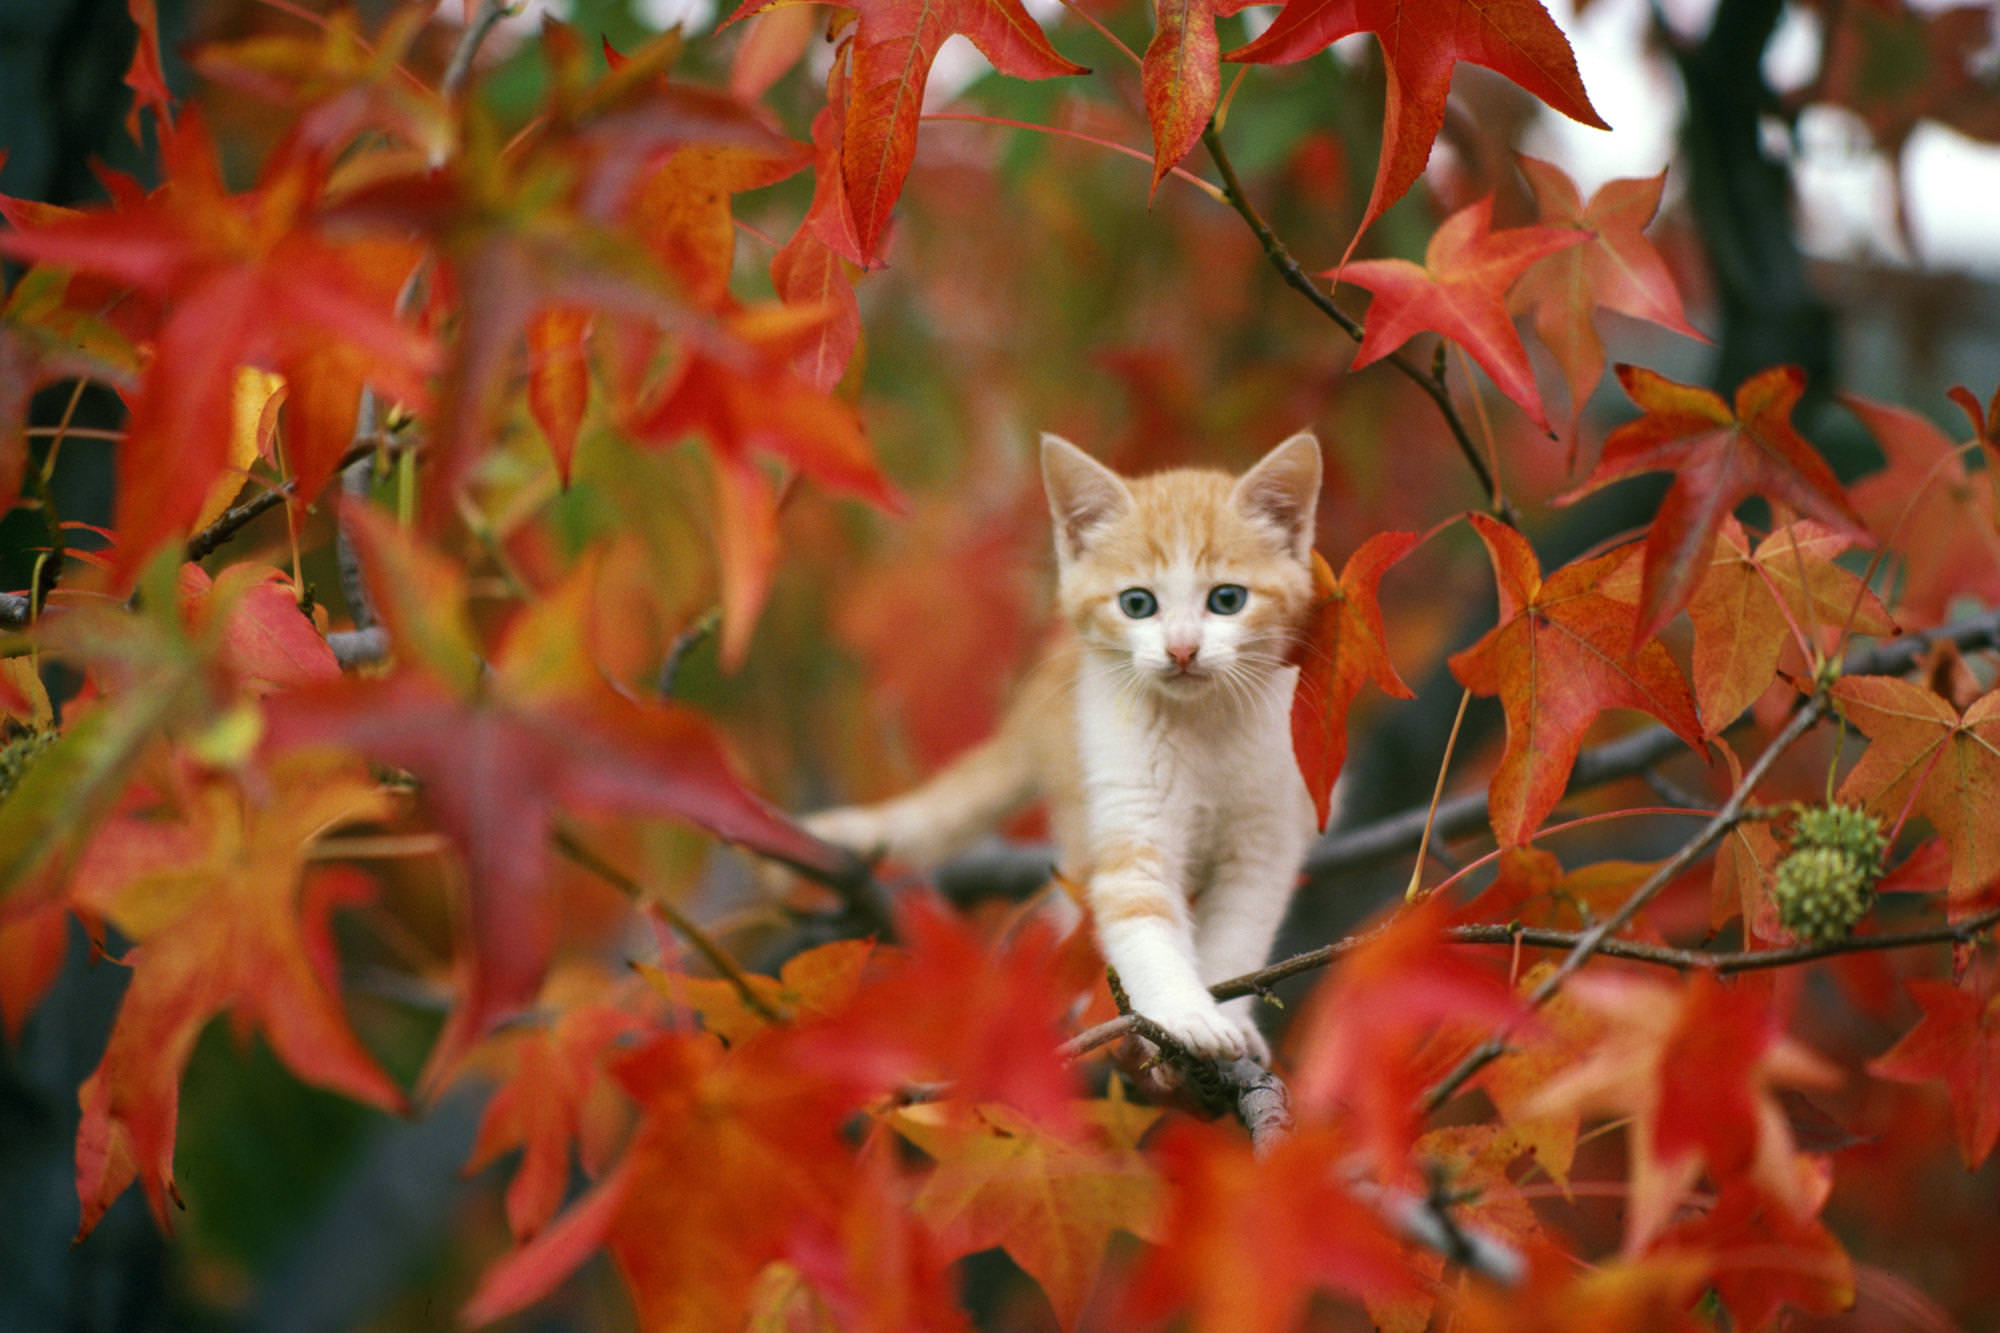 Cute Cat on Tree Branches